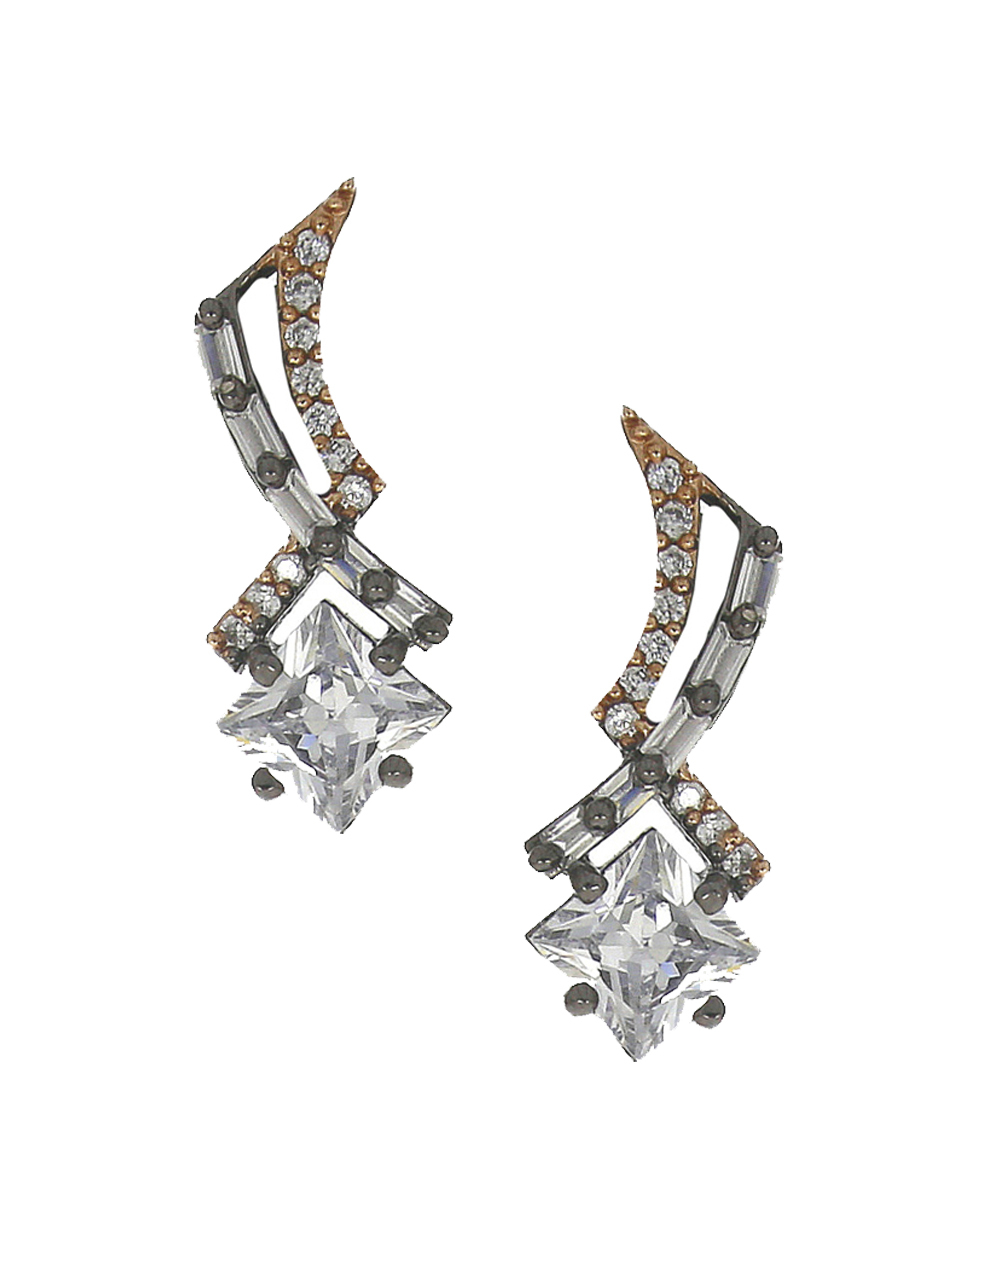 American diamond studded fancy silverplated pendant with earrings set